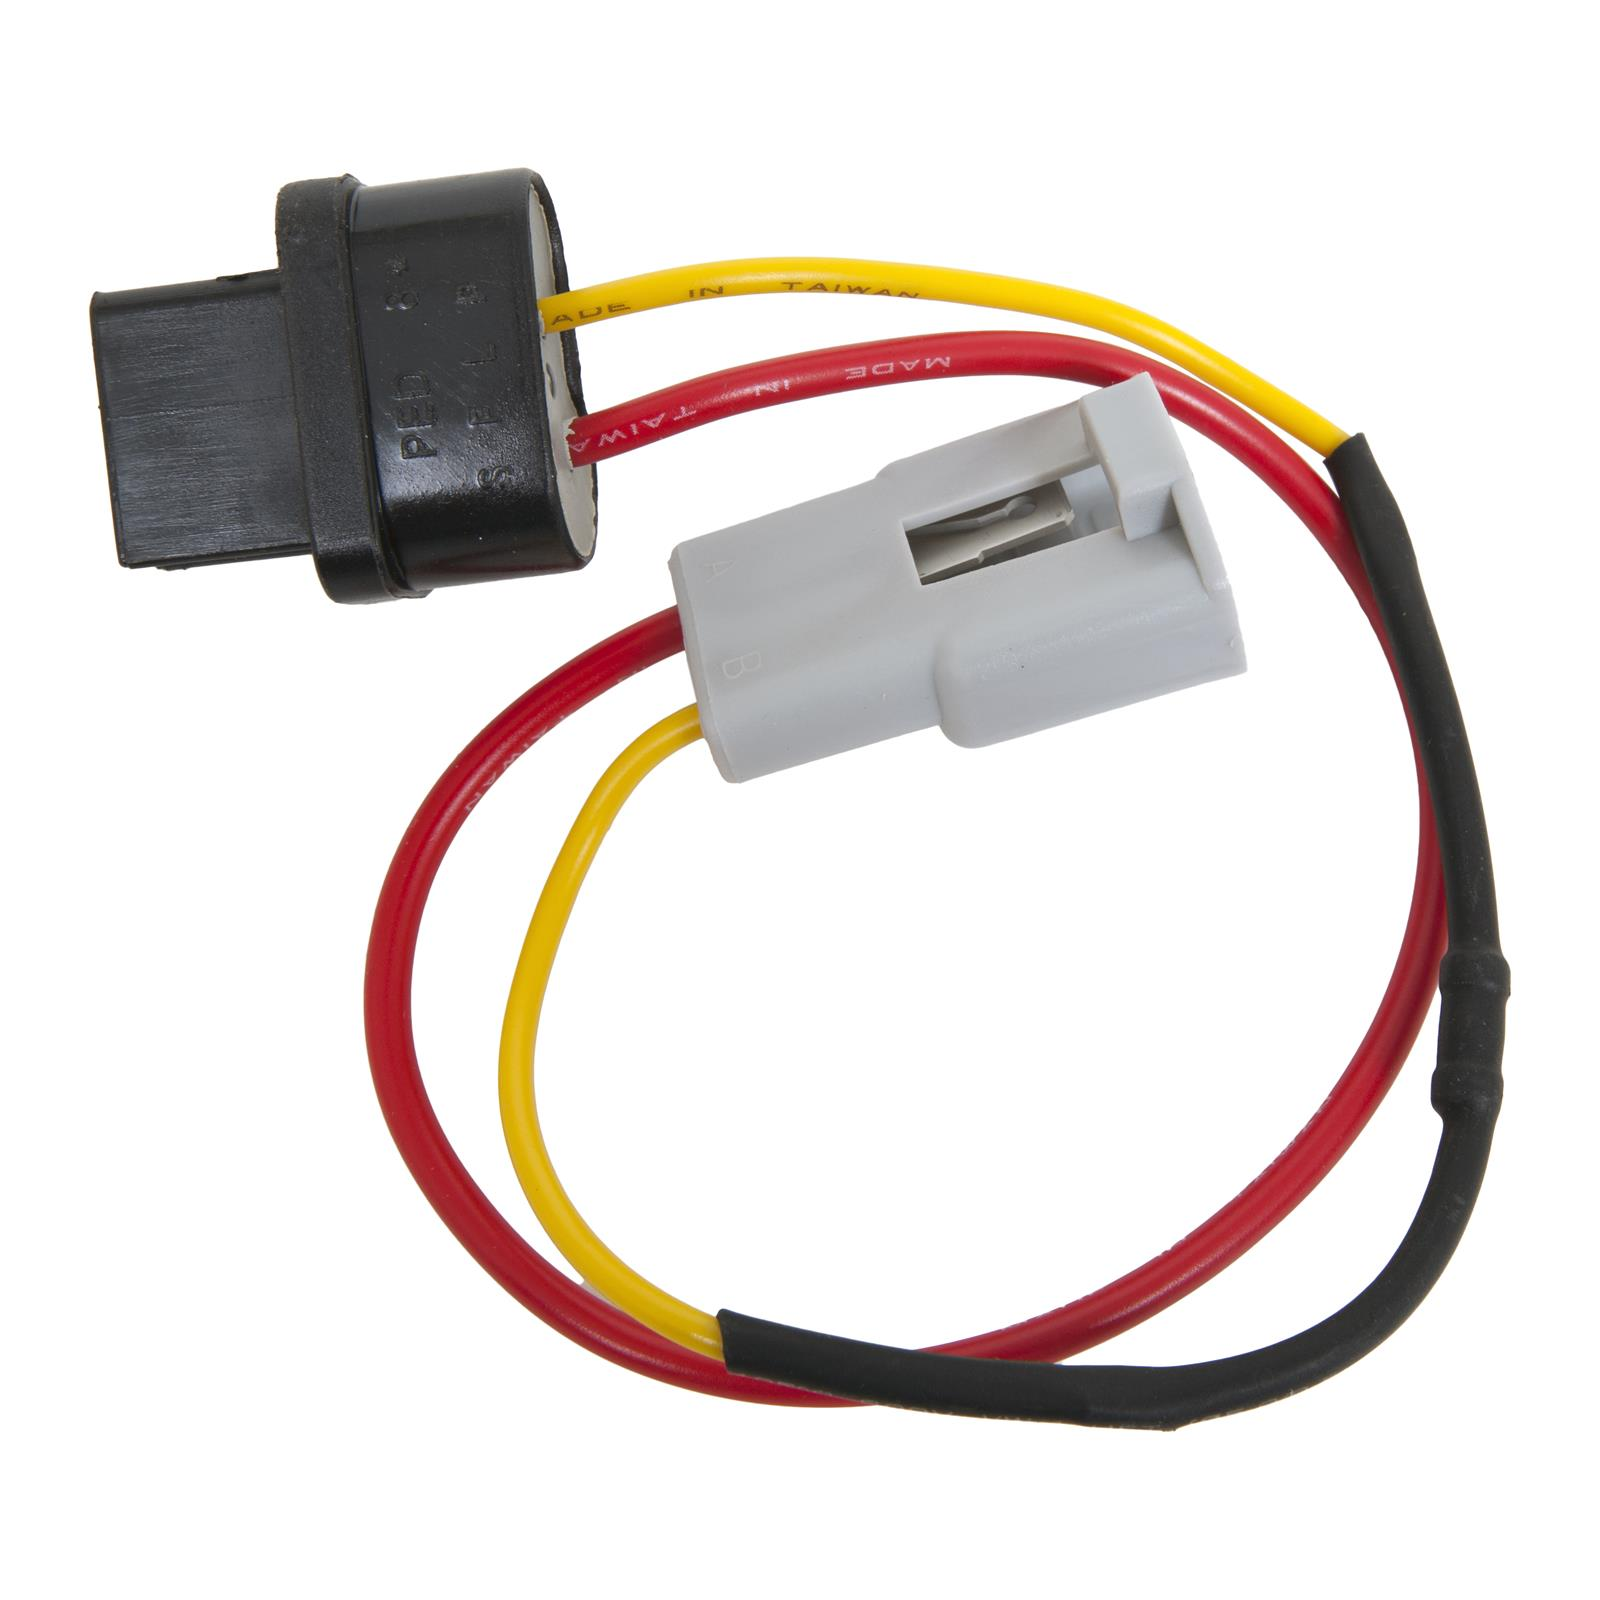 ado pt2145_xl acdelco replacement wiring harness connectors pt2145 free wiring harness connectors at gsmportal.co